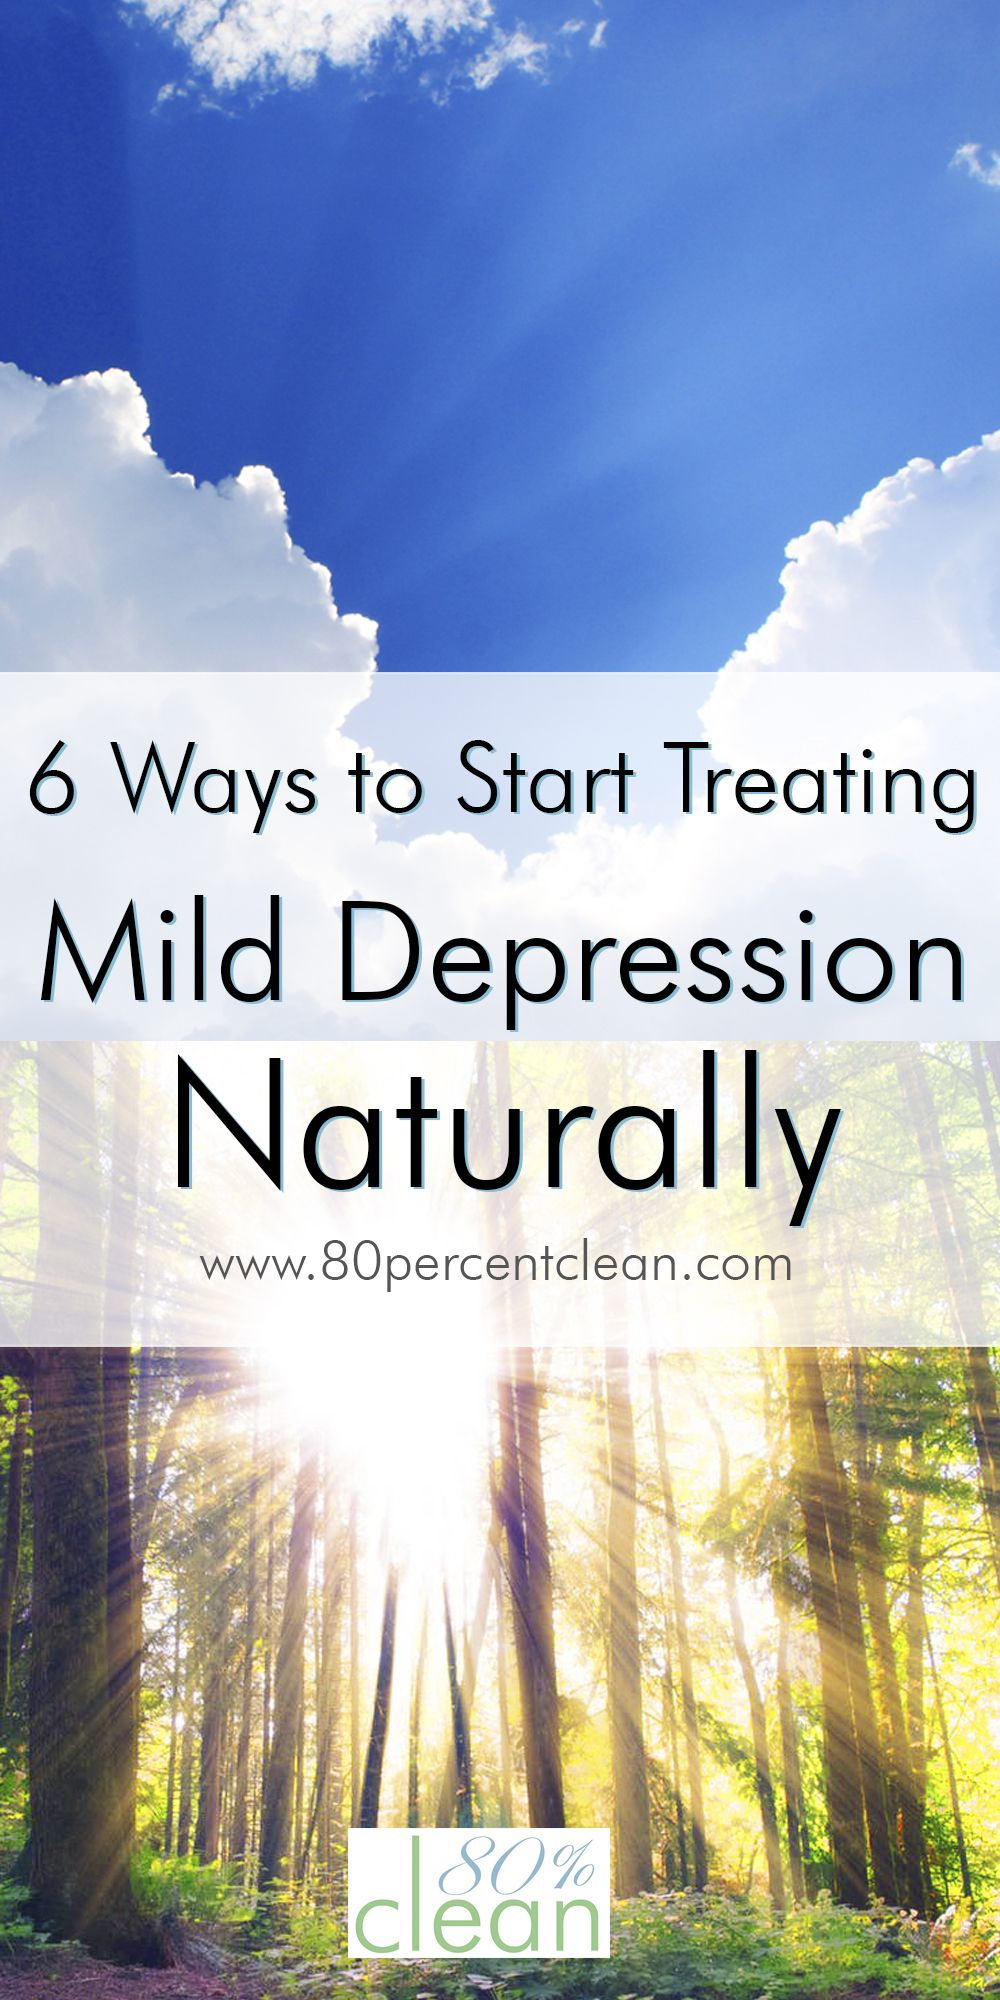 Feeling down? Think you might have a mild case of depression, but don't want to start on medication? You can try treating mild depression naturally first.